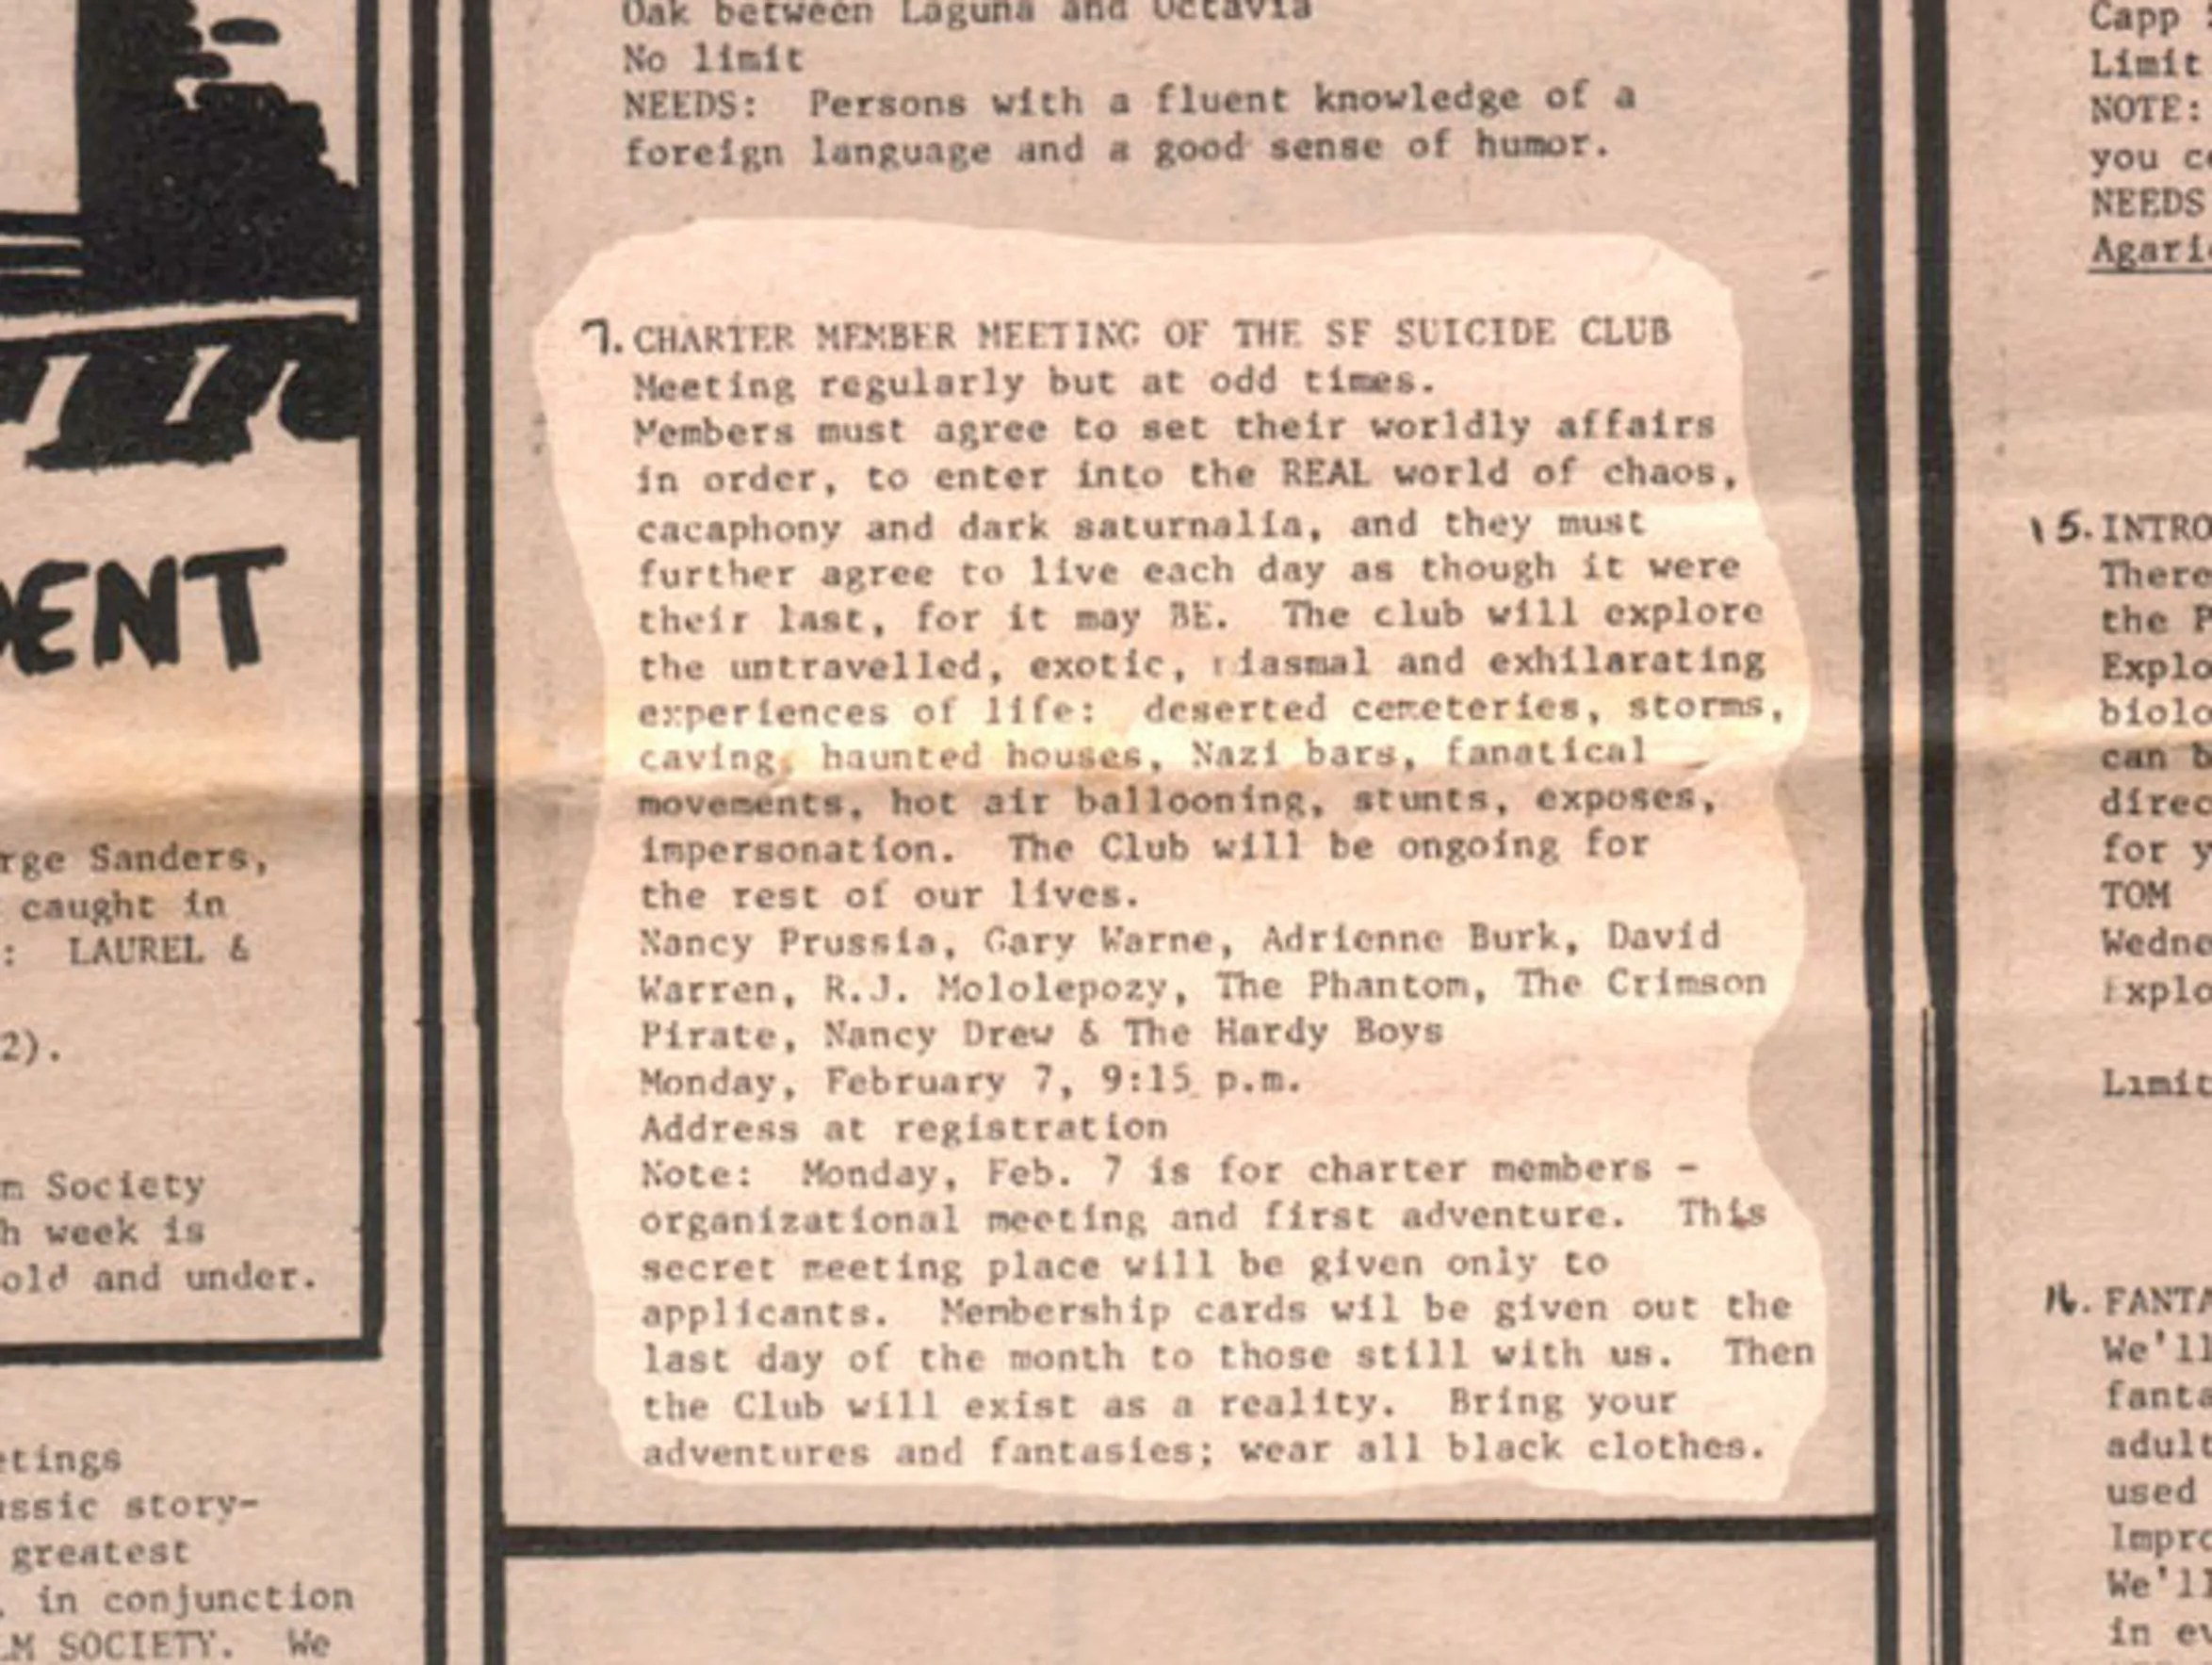 A newspaper clipping pictured by the Suicide Club shows